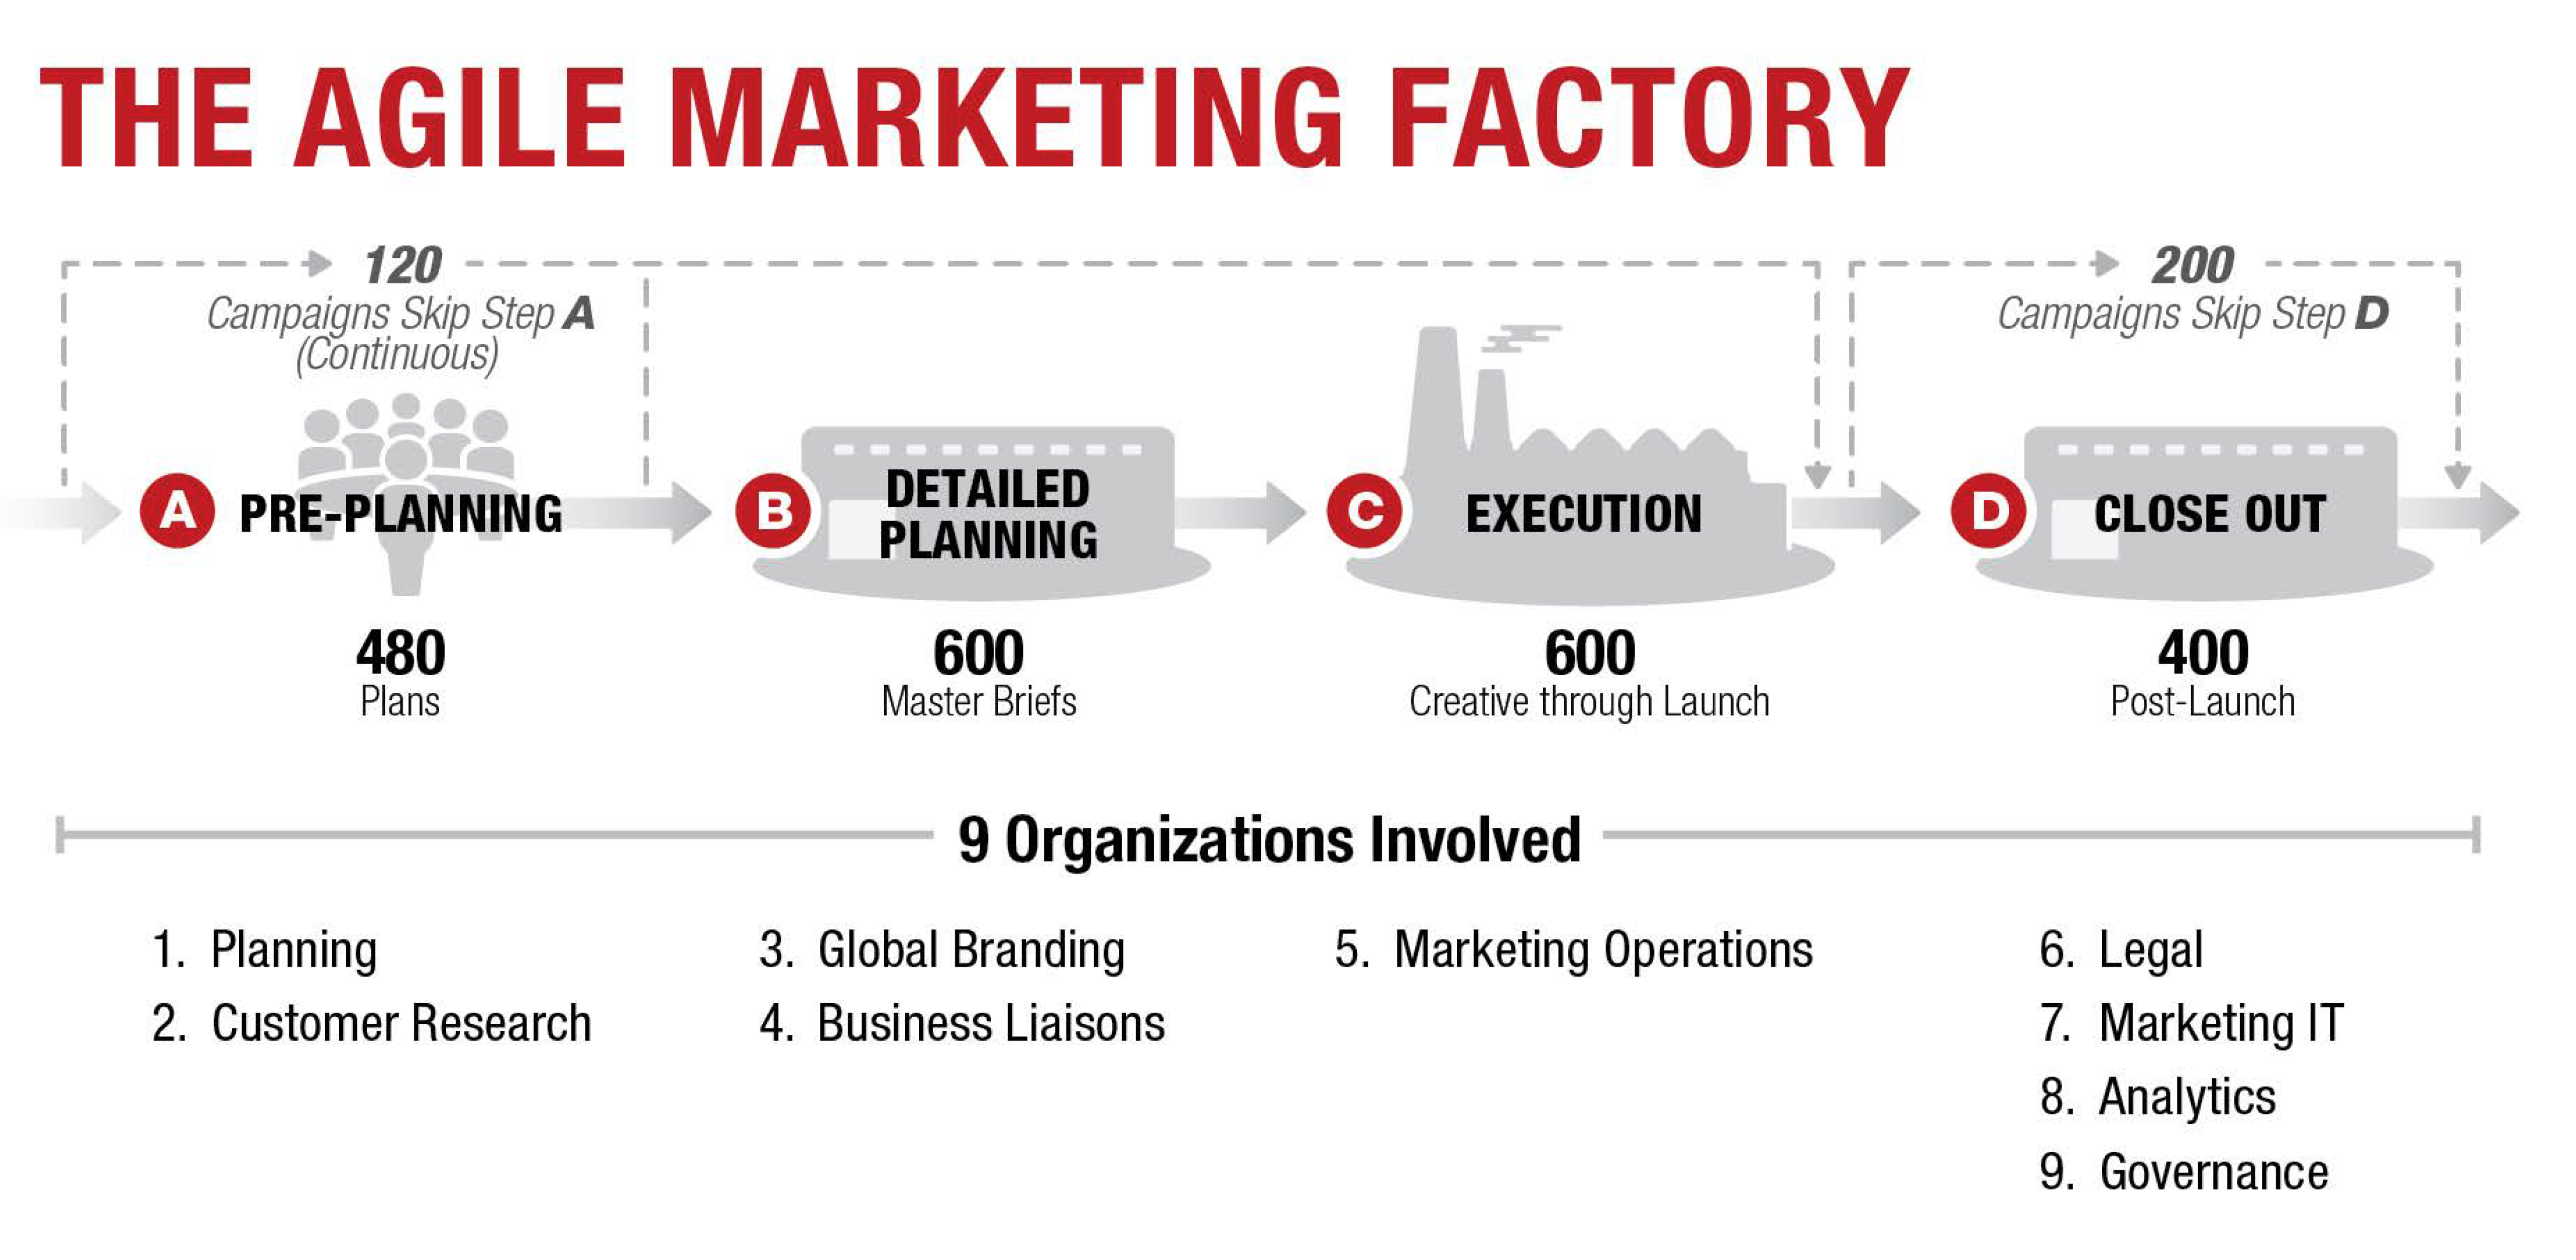 How to Create an Agile 'Marketing Factory'